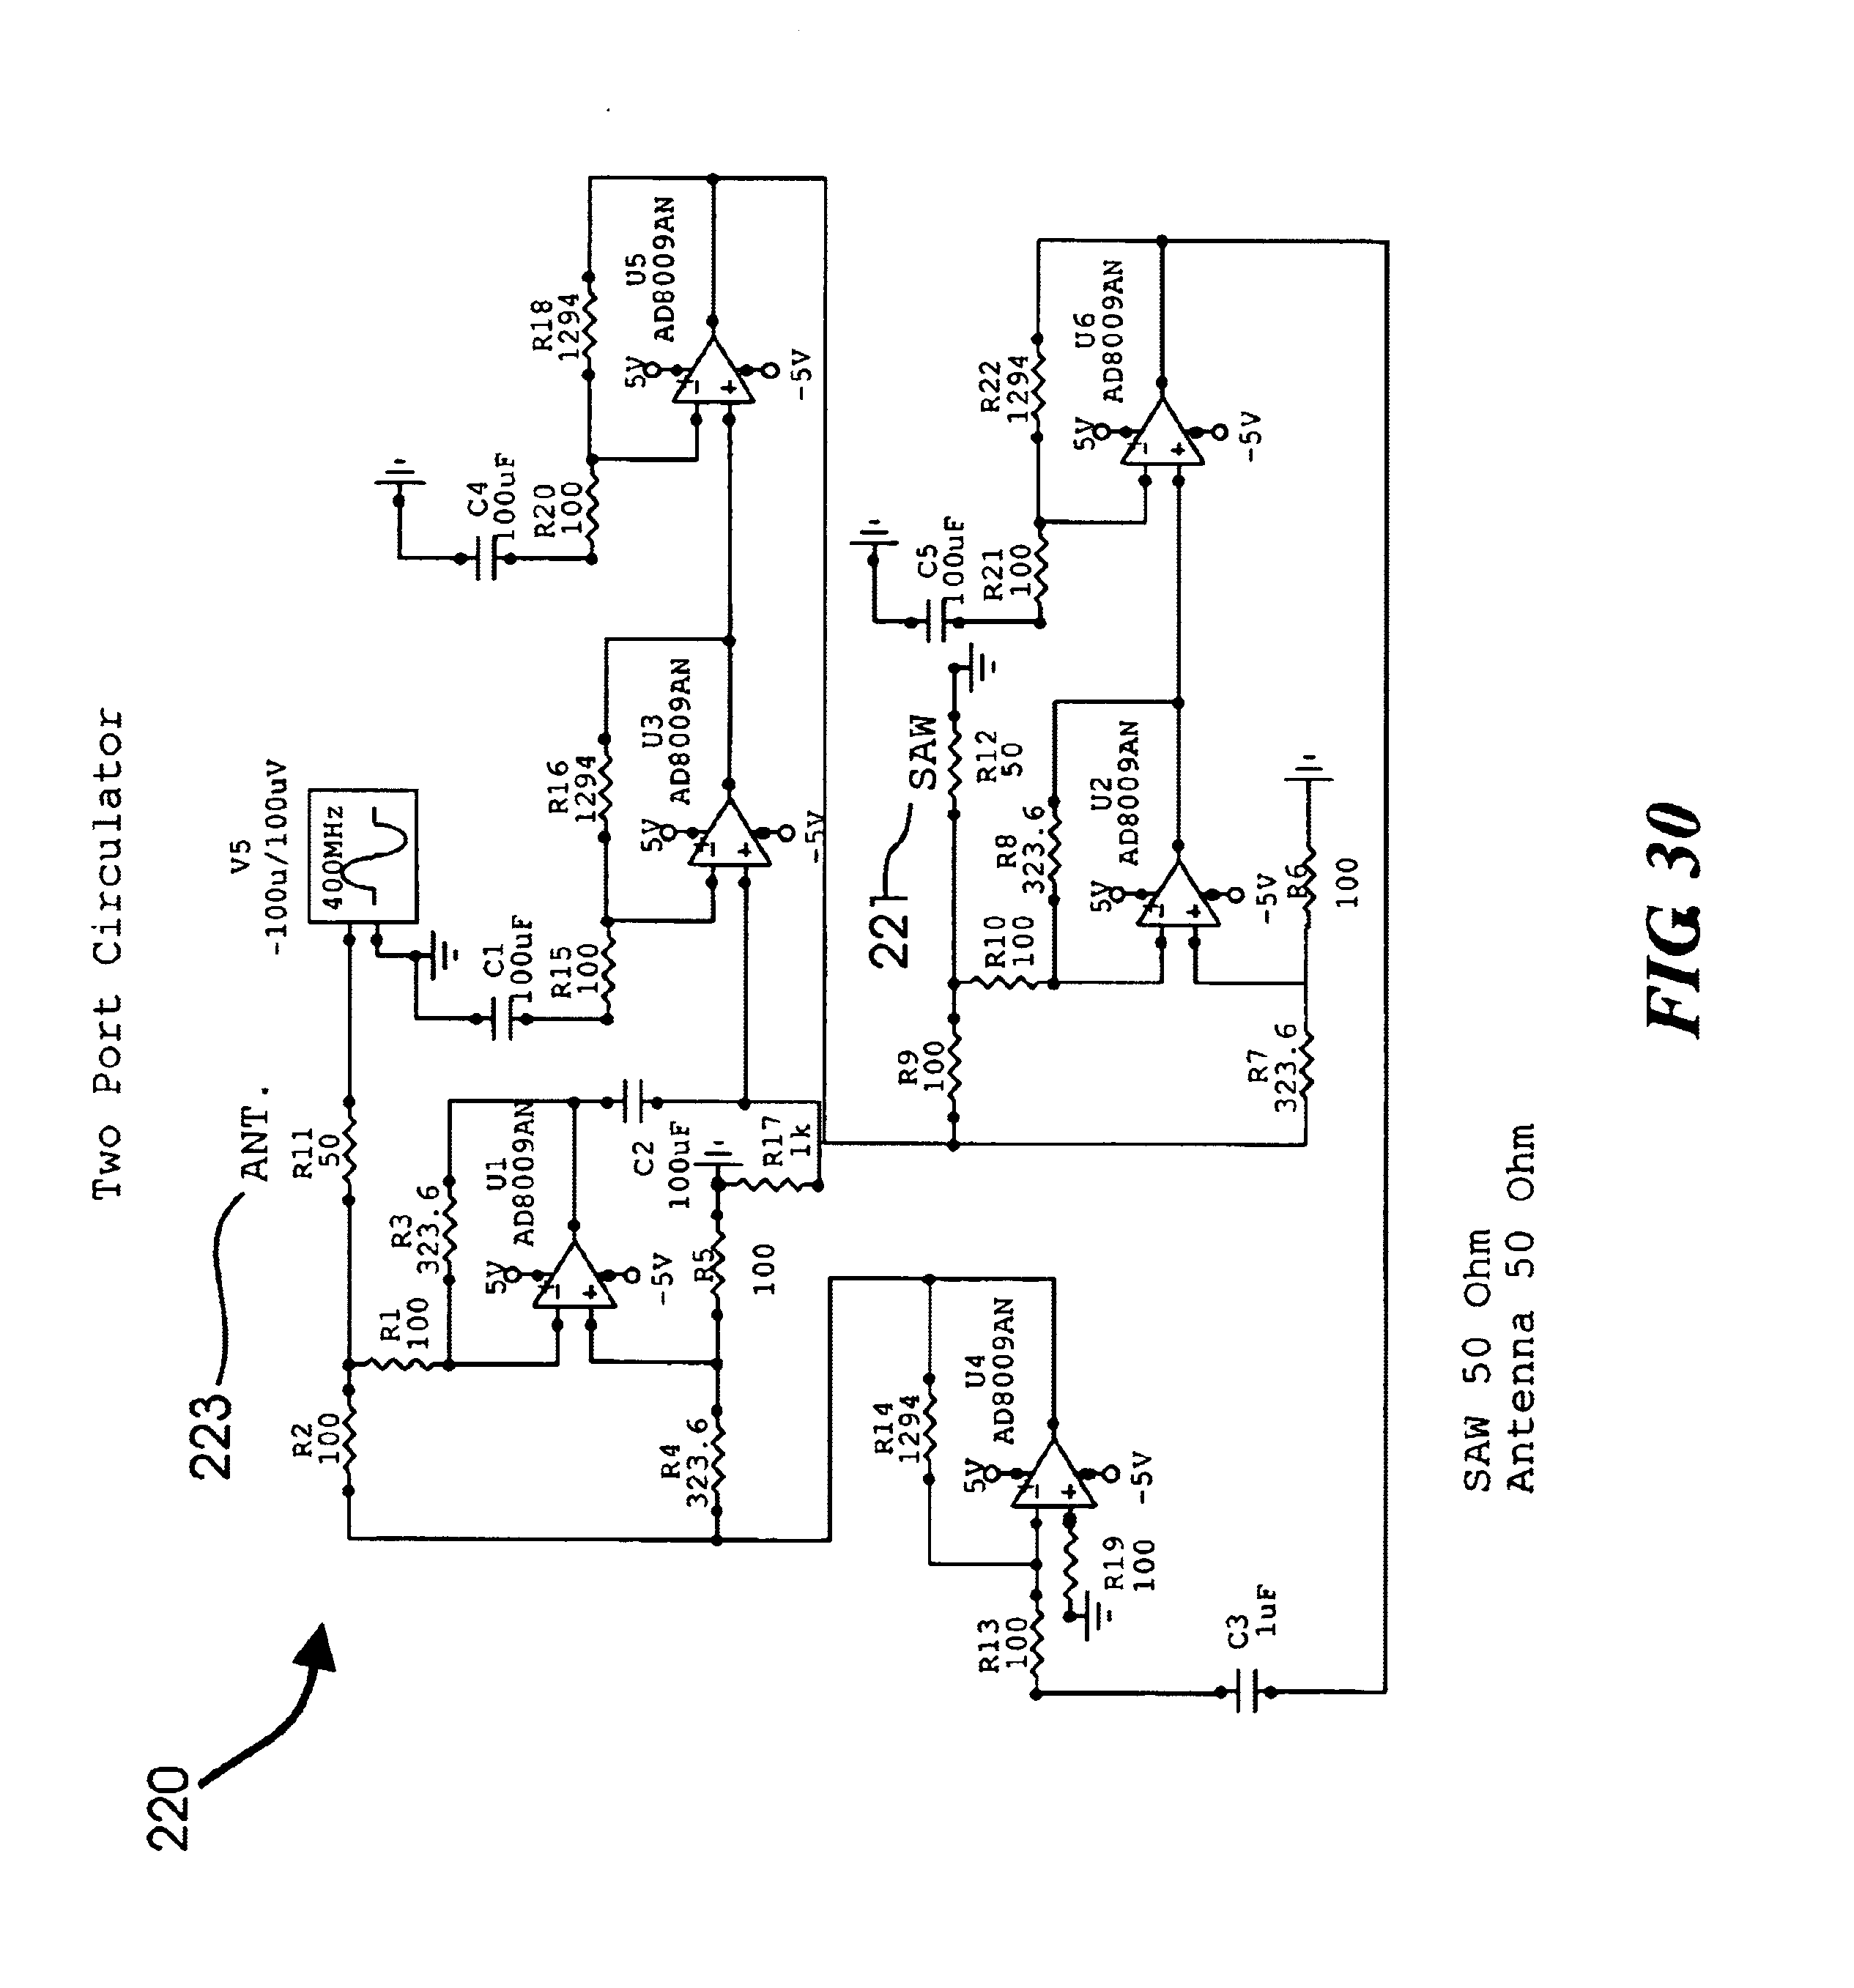 Patent Us 6988026 B2 Now Redraw The Circuit Diagram With Pictures Of Above Components Images